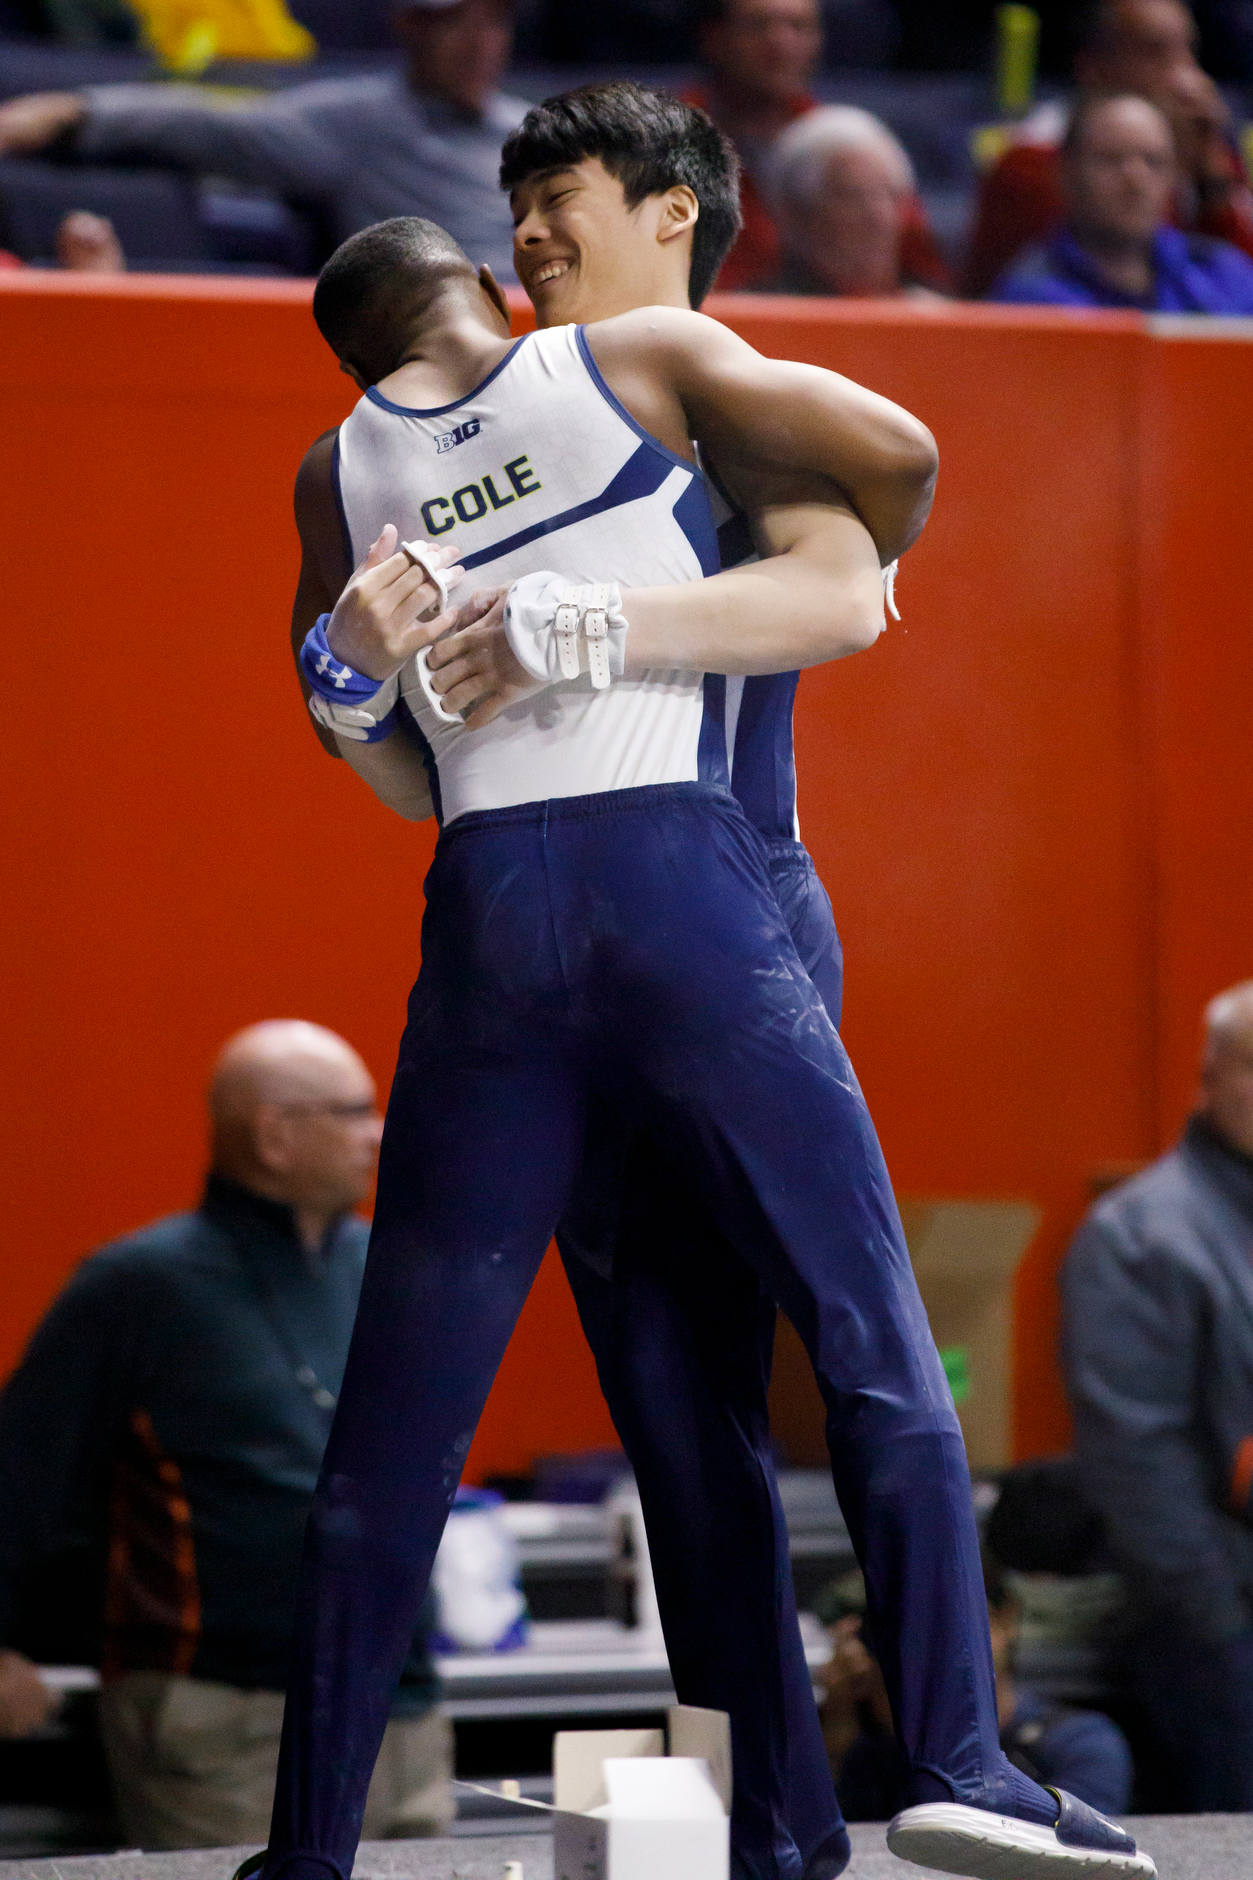 Michigan's Emyre Cole, left, hugs teammate Johnathan Liu after Liu competed on the high bar at the NCAA Men's Gymnastics Championships on Friday, April 19, 2019, at the State Farm Center in Champaign, Illinois. (Photo by James Brosher)